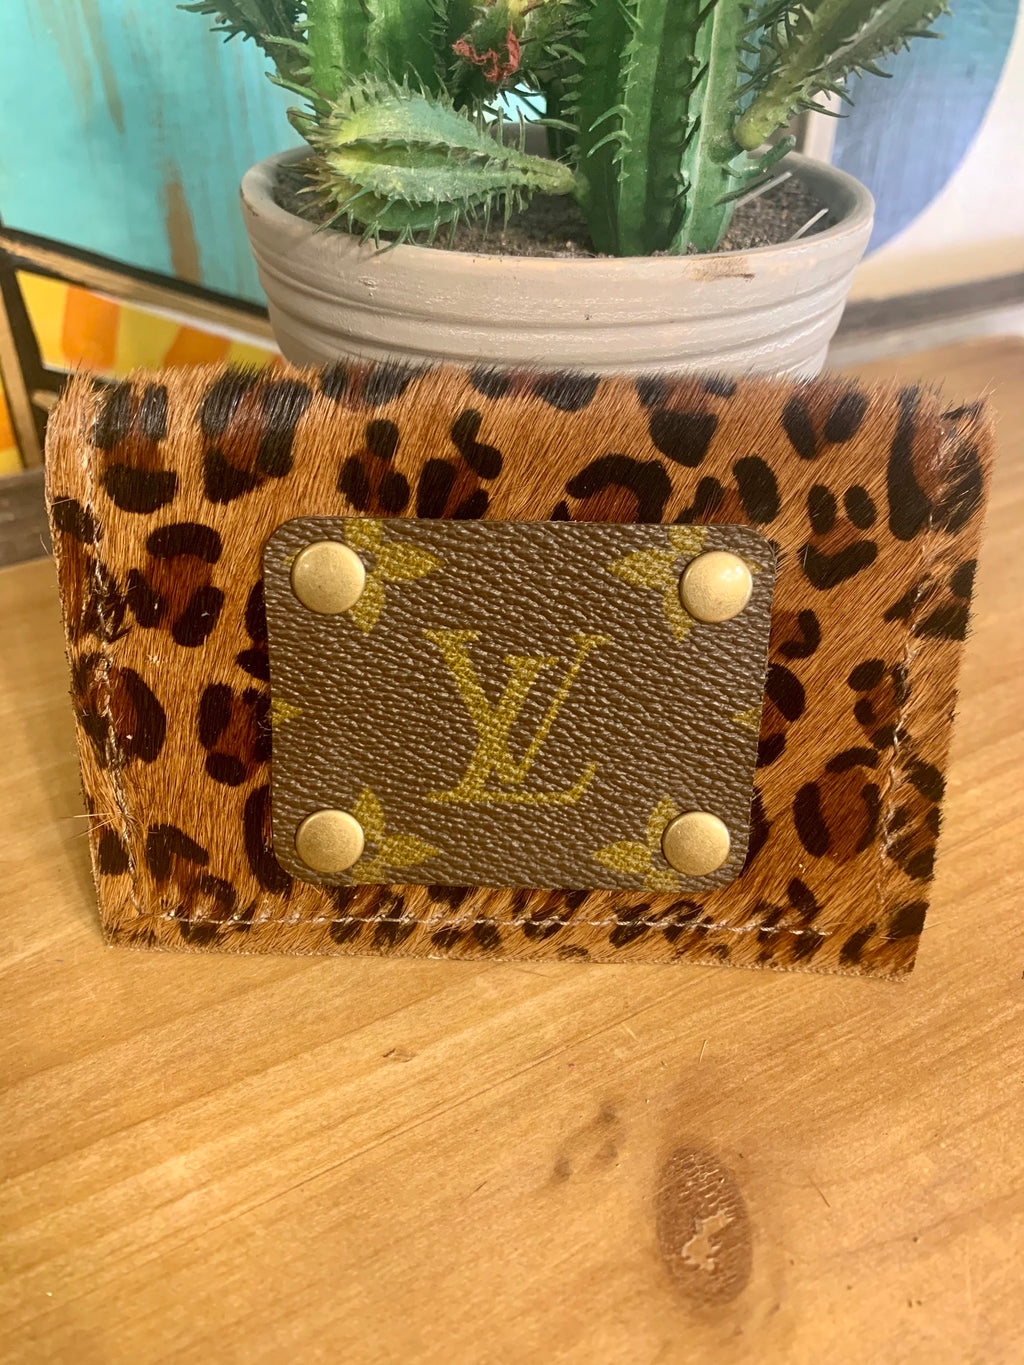 Upcycled Credit Card Holder-Dark Leopard Print